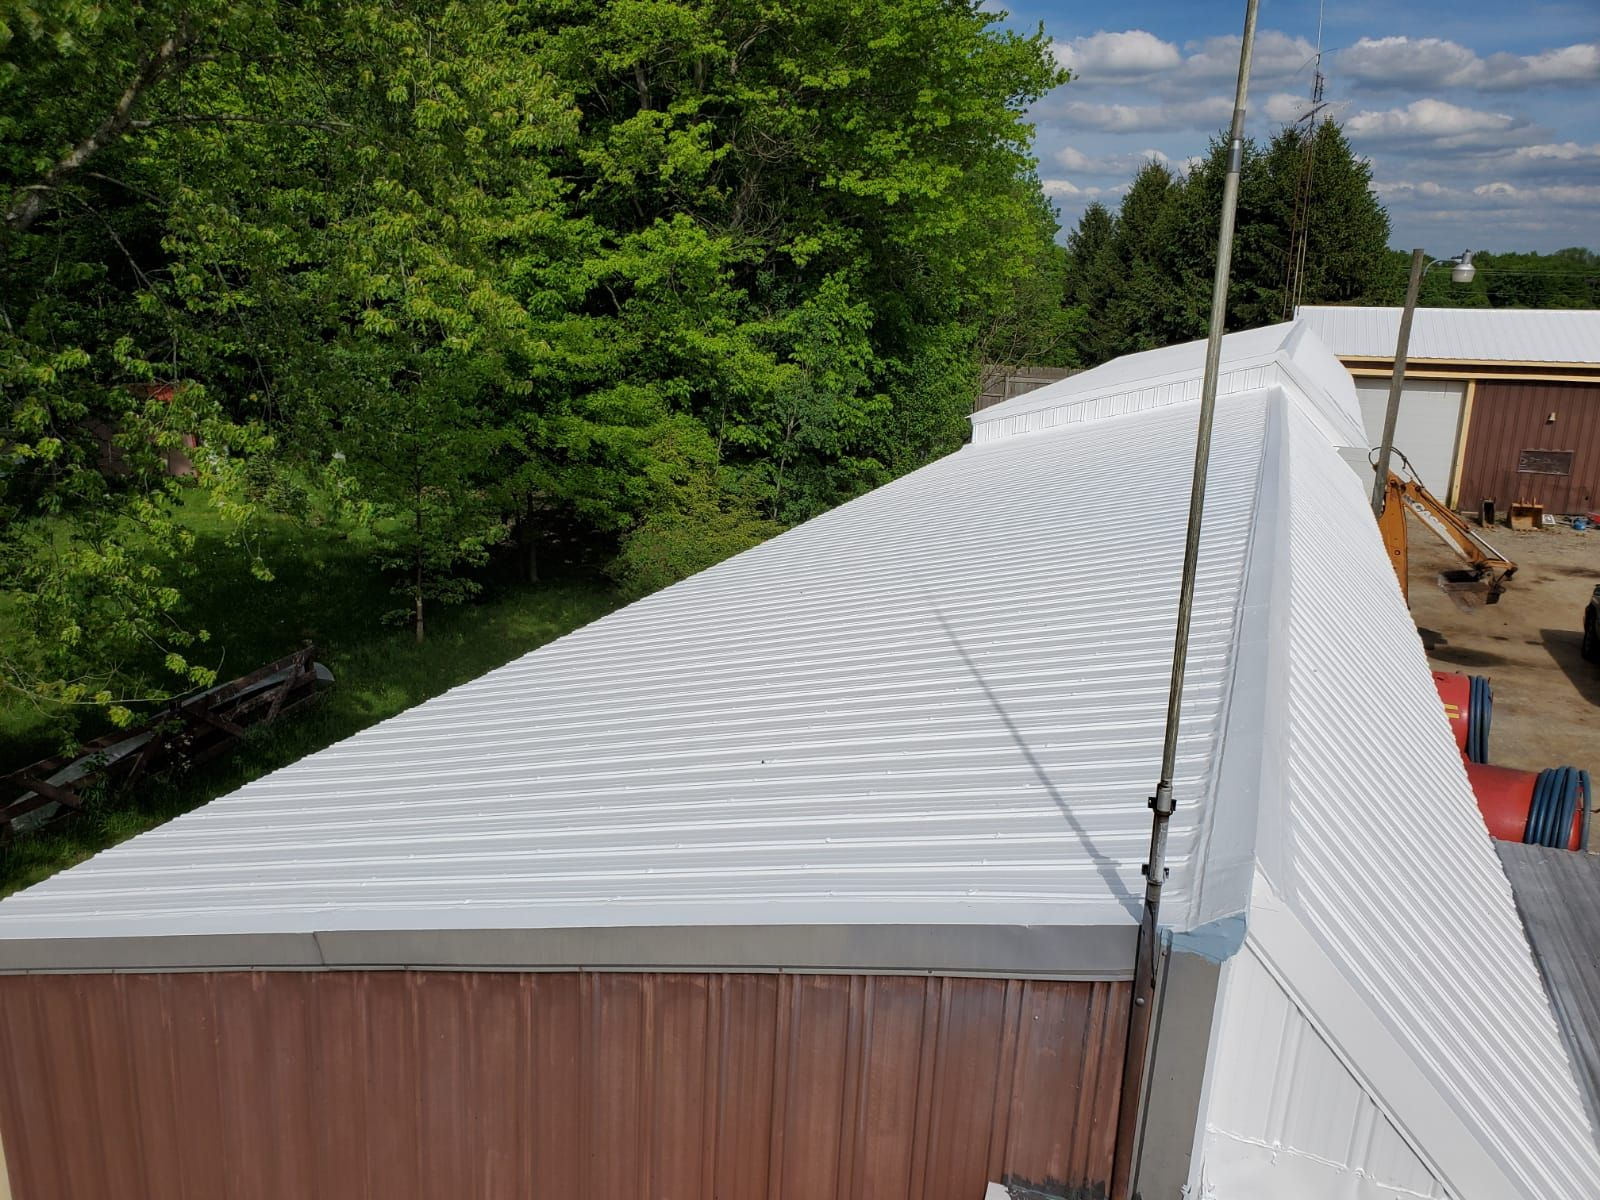 a commercial roof that recently underwent a urethane modified acrylic coating